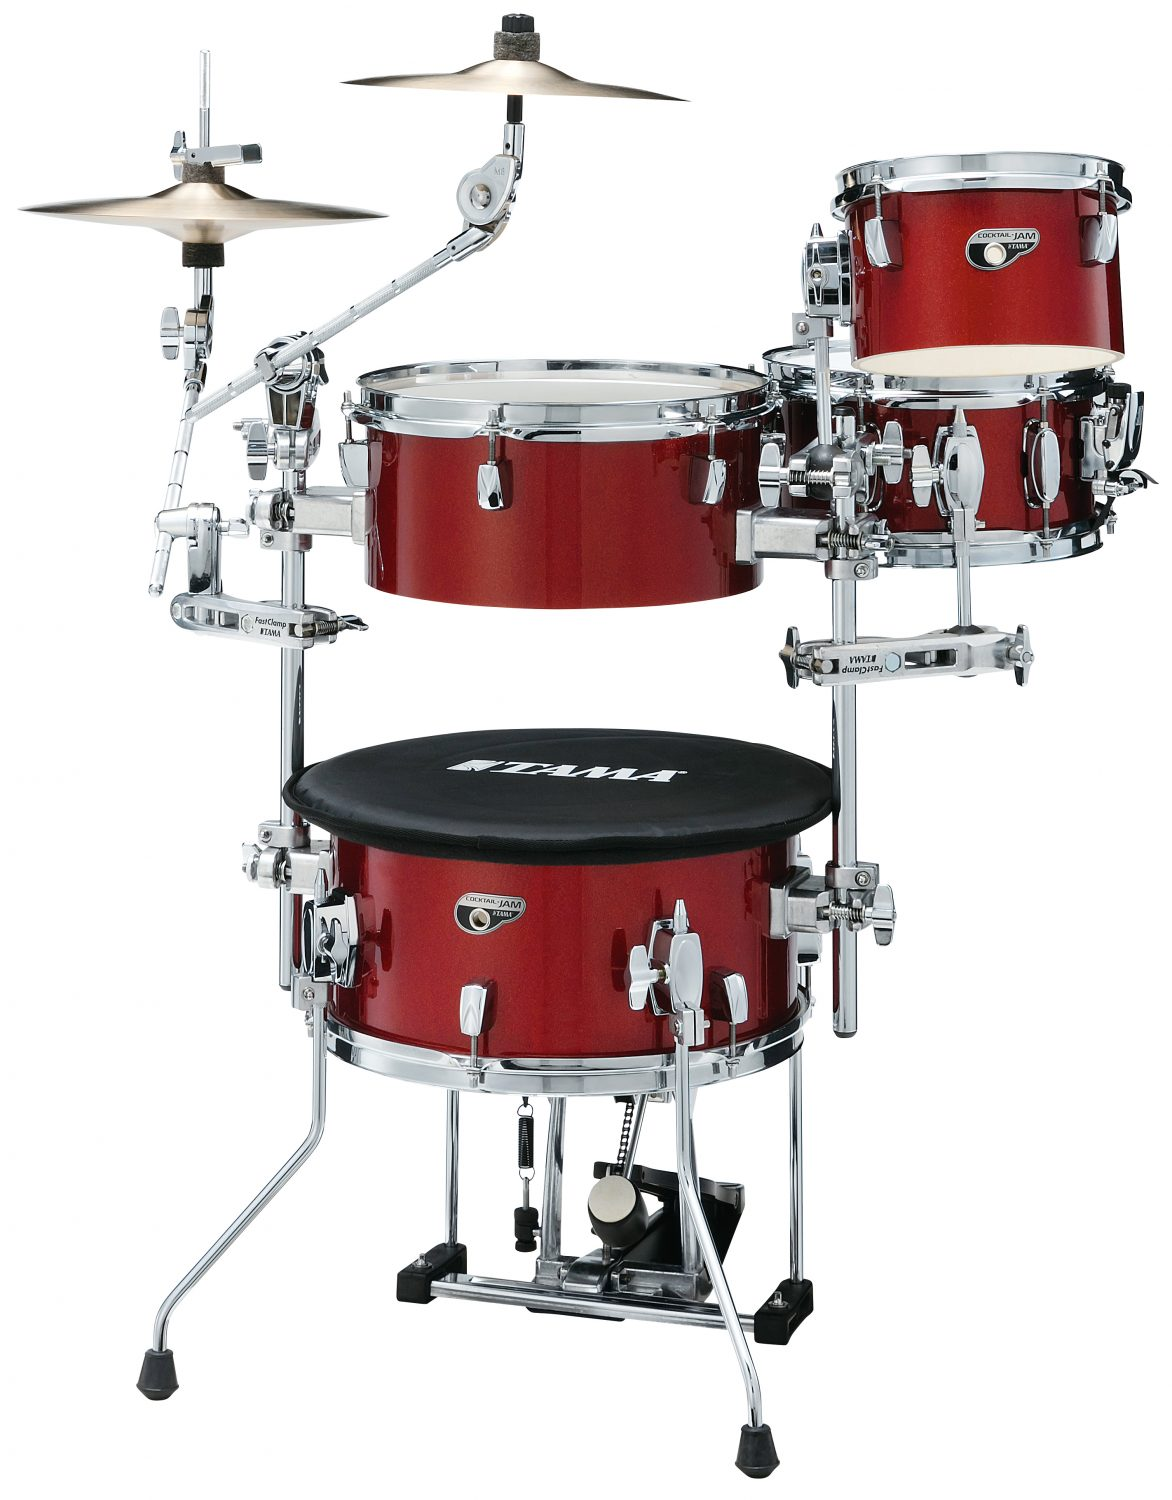 Tama Expands Cocktail JAM Line With New Mini